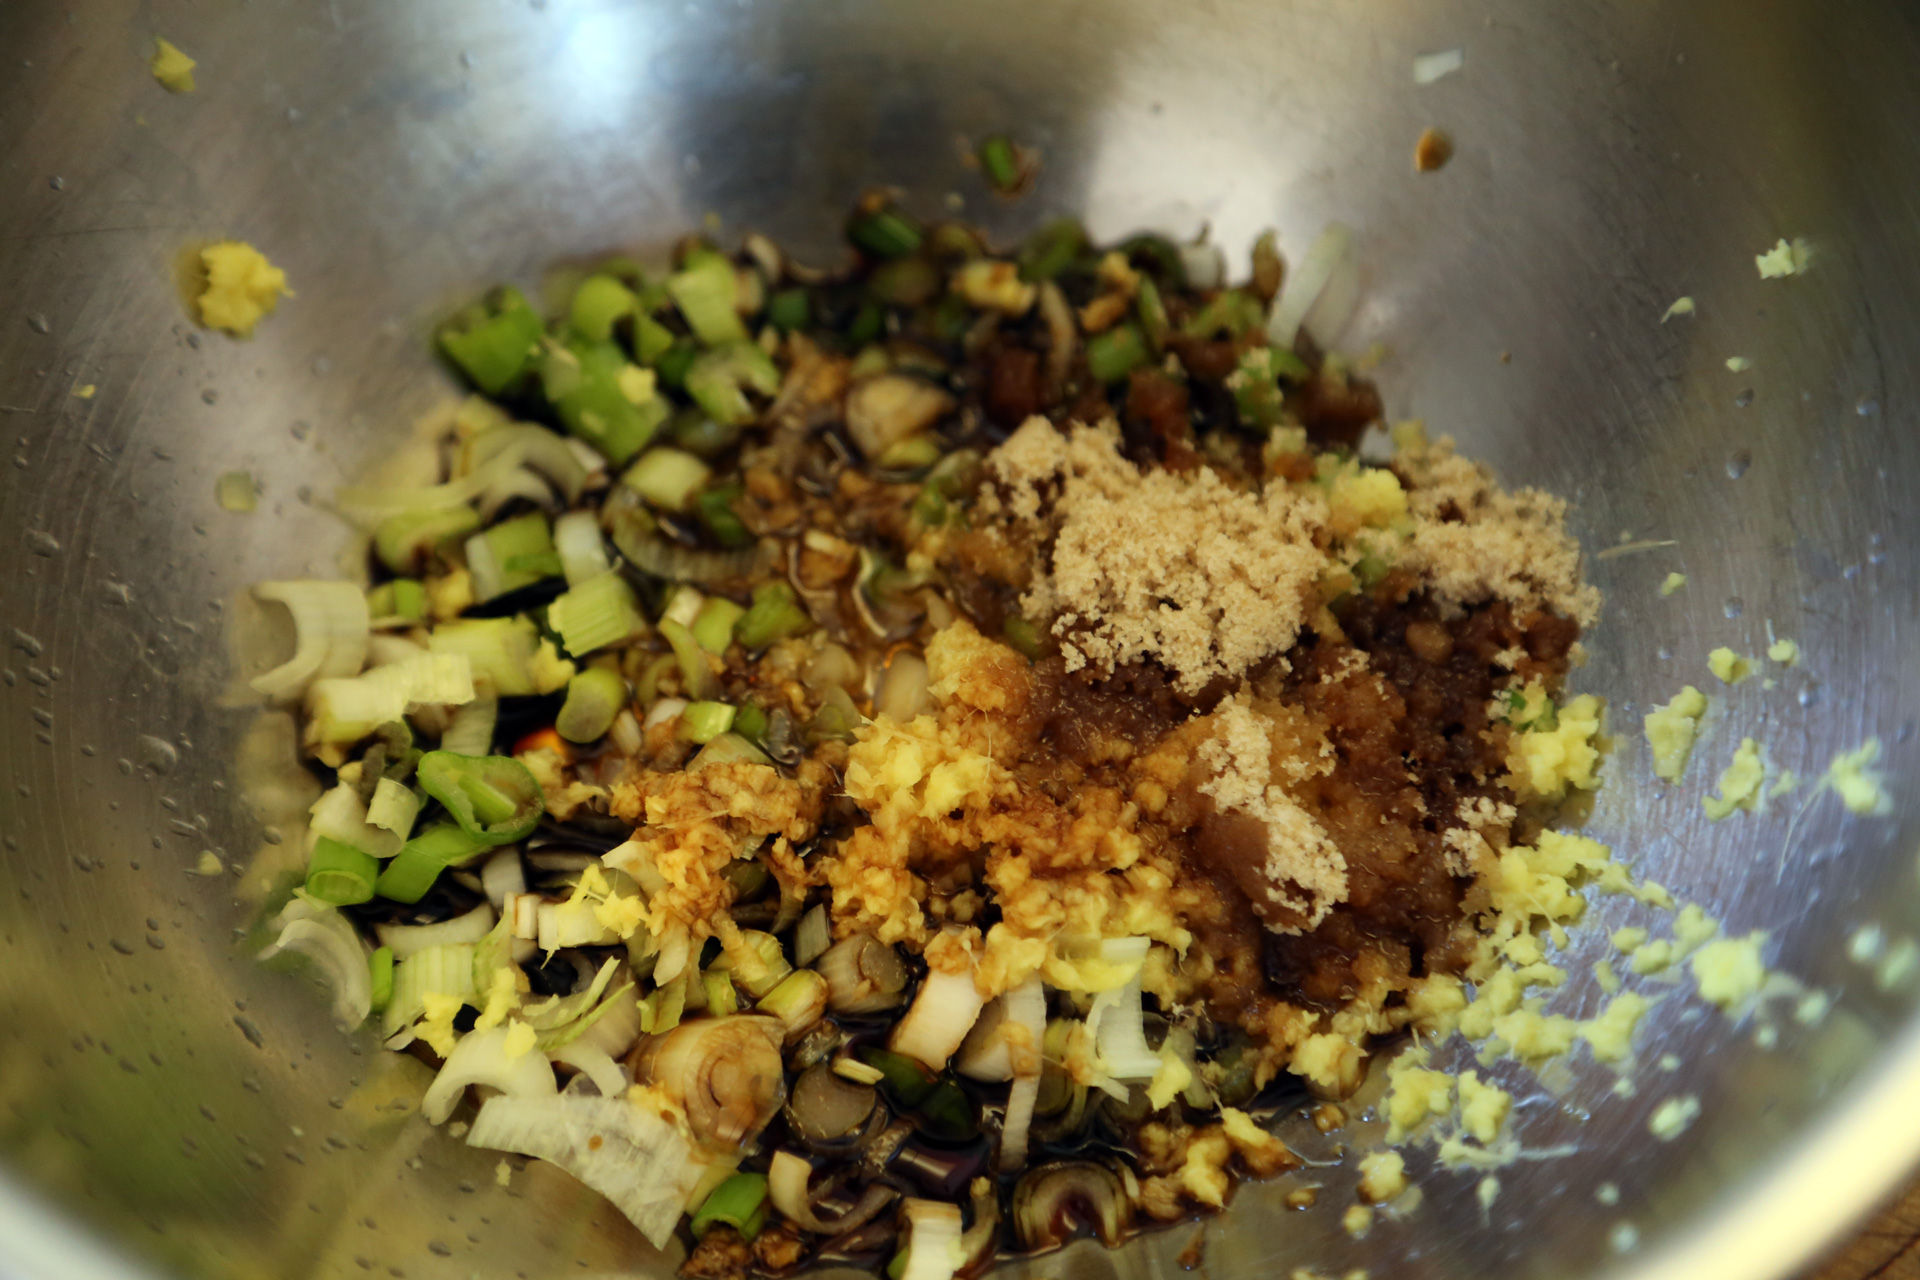 In a bowl, whisk together the green onions, soy sauce, sesame oil, sugar, and ginger.